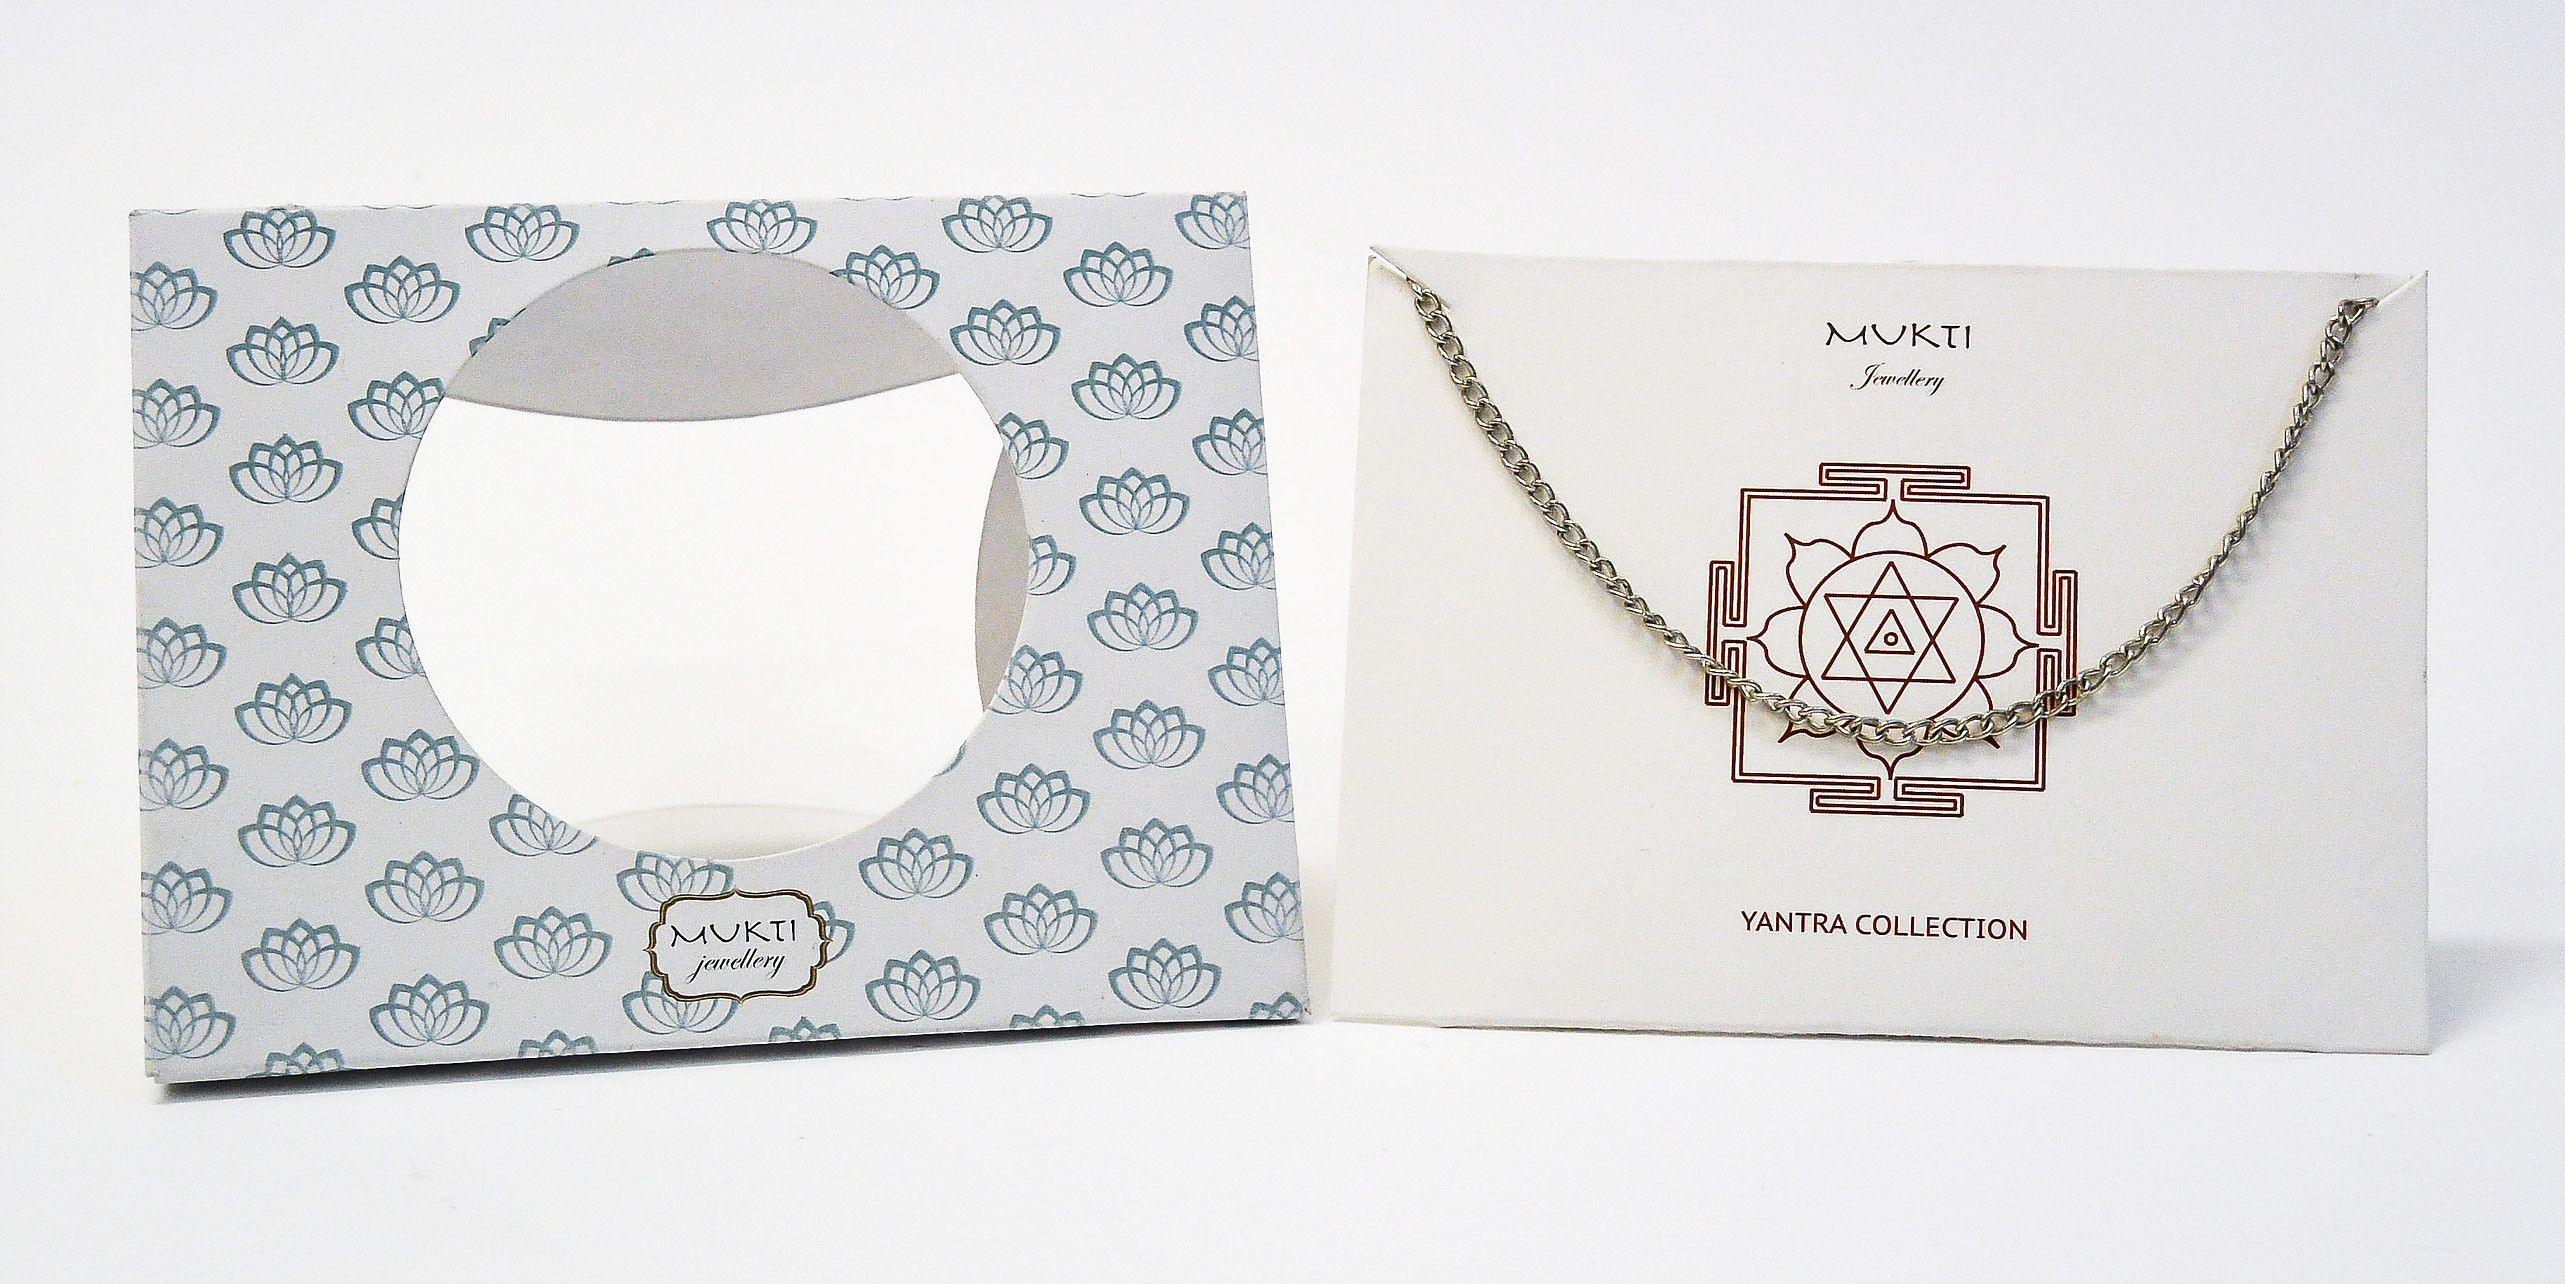 die cut jewellery packaging